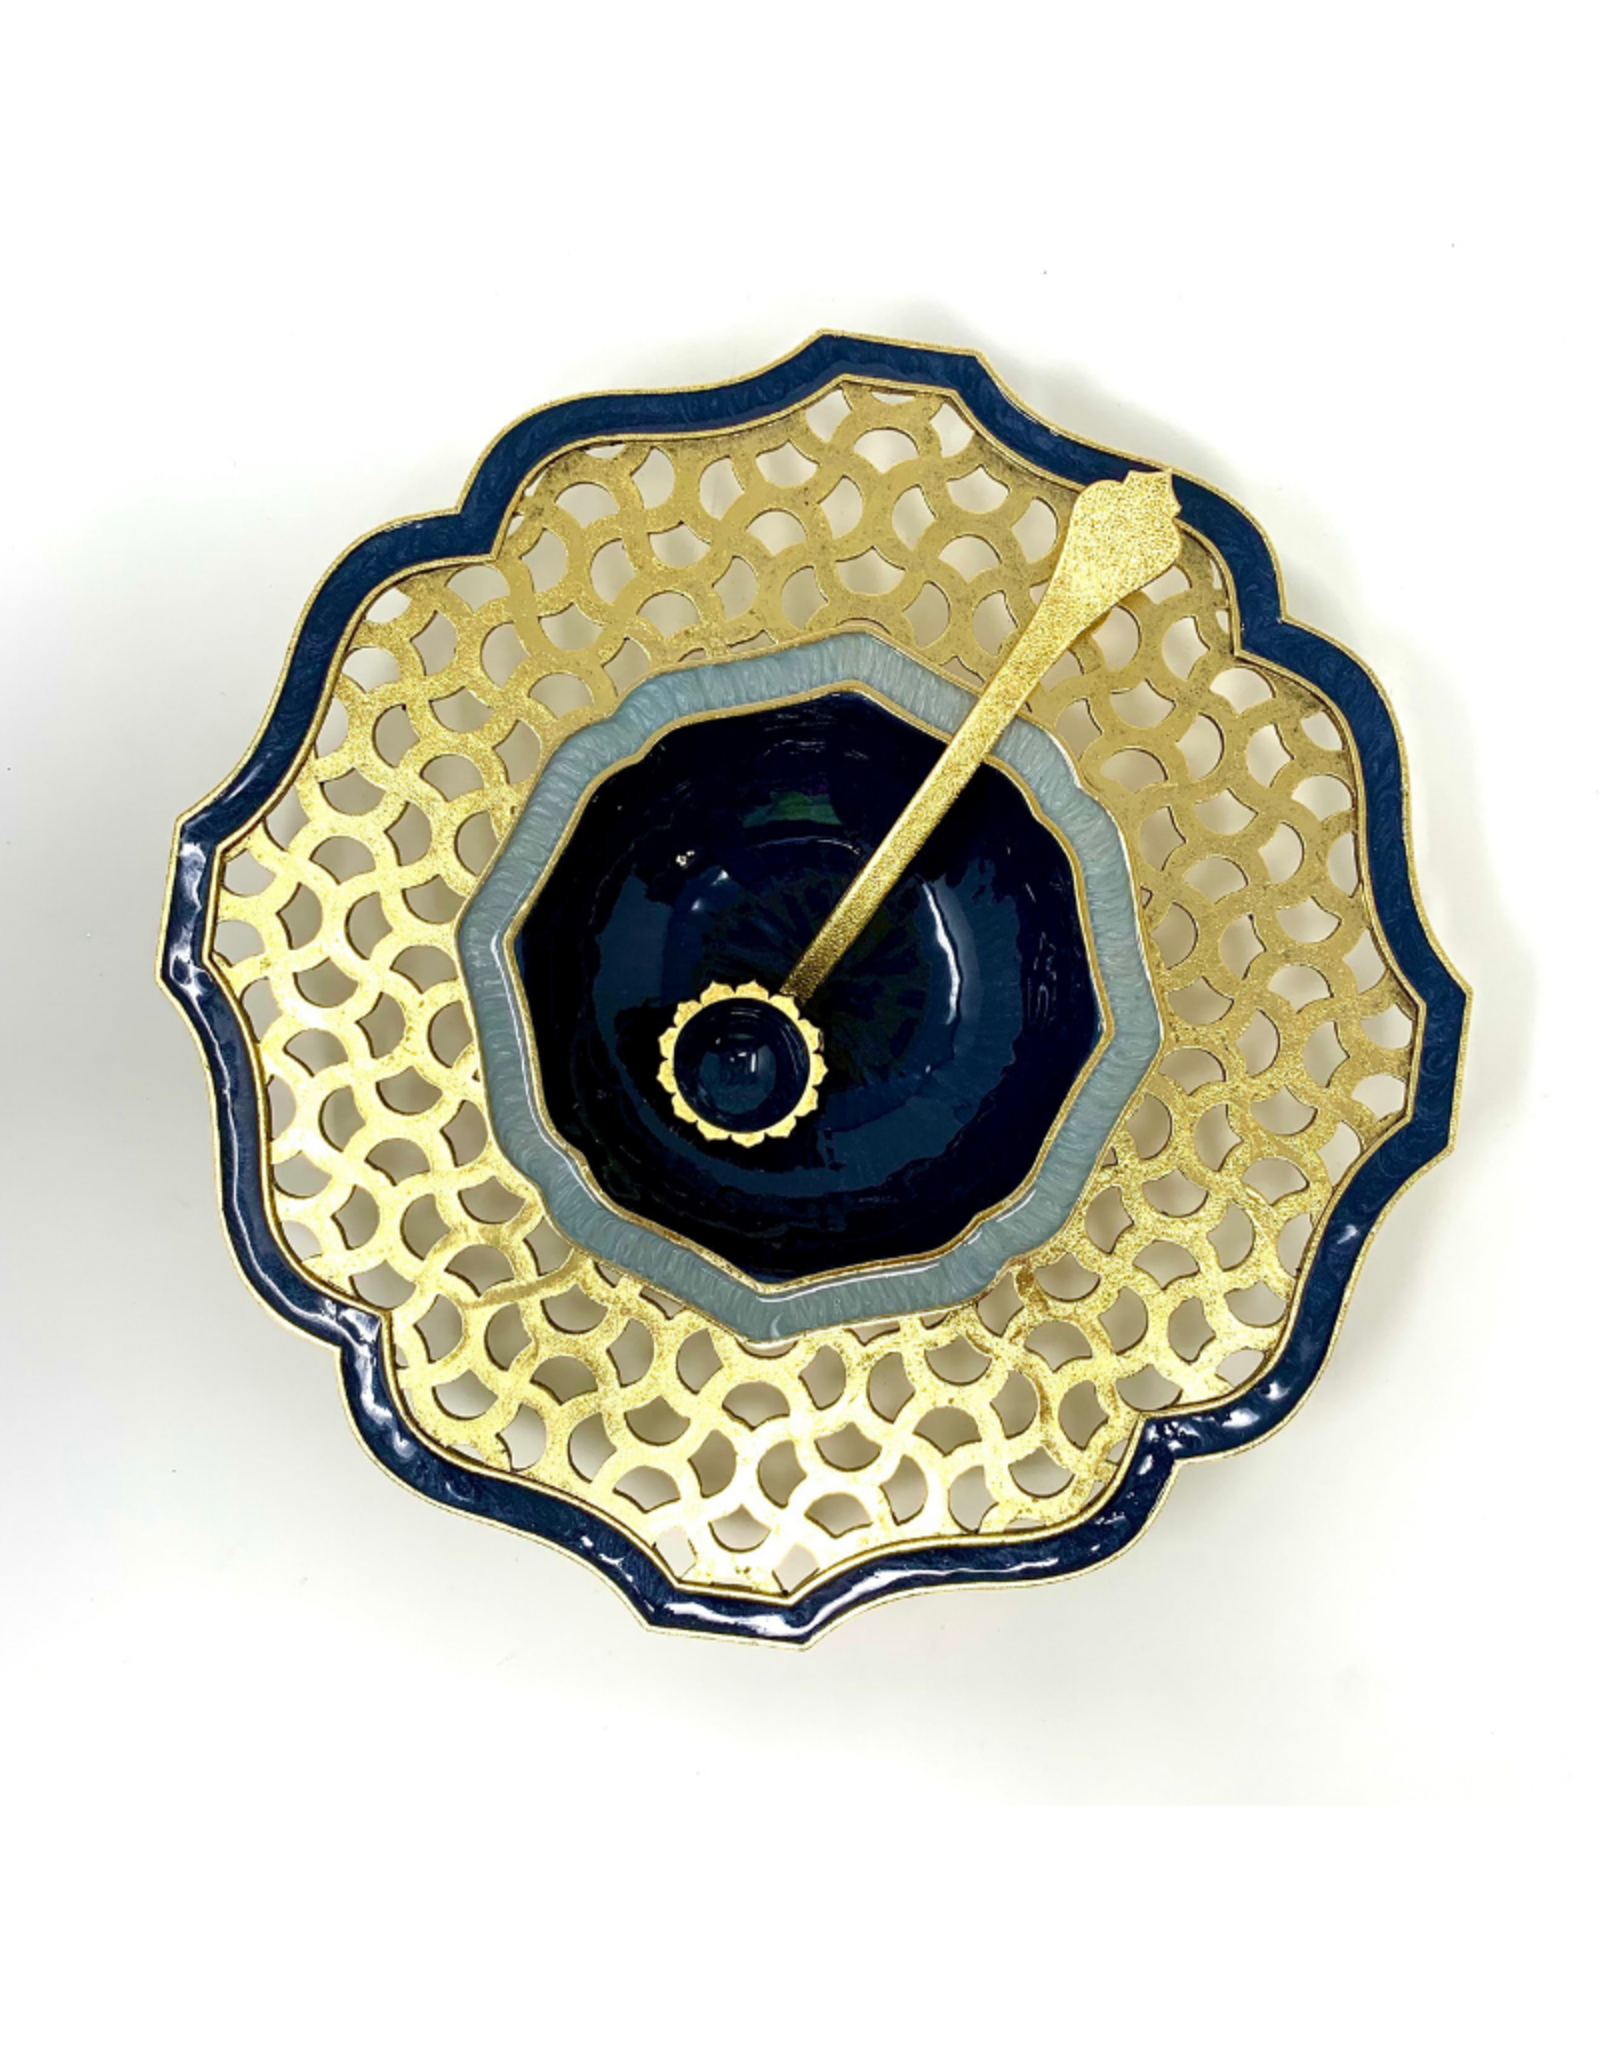 Marrakesh Honey Dish With Spoon